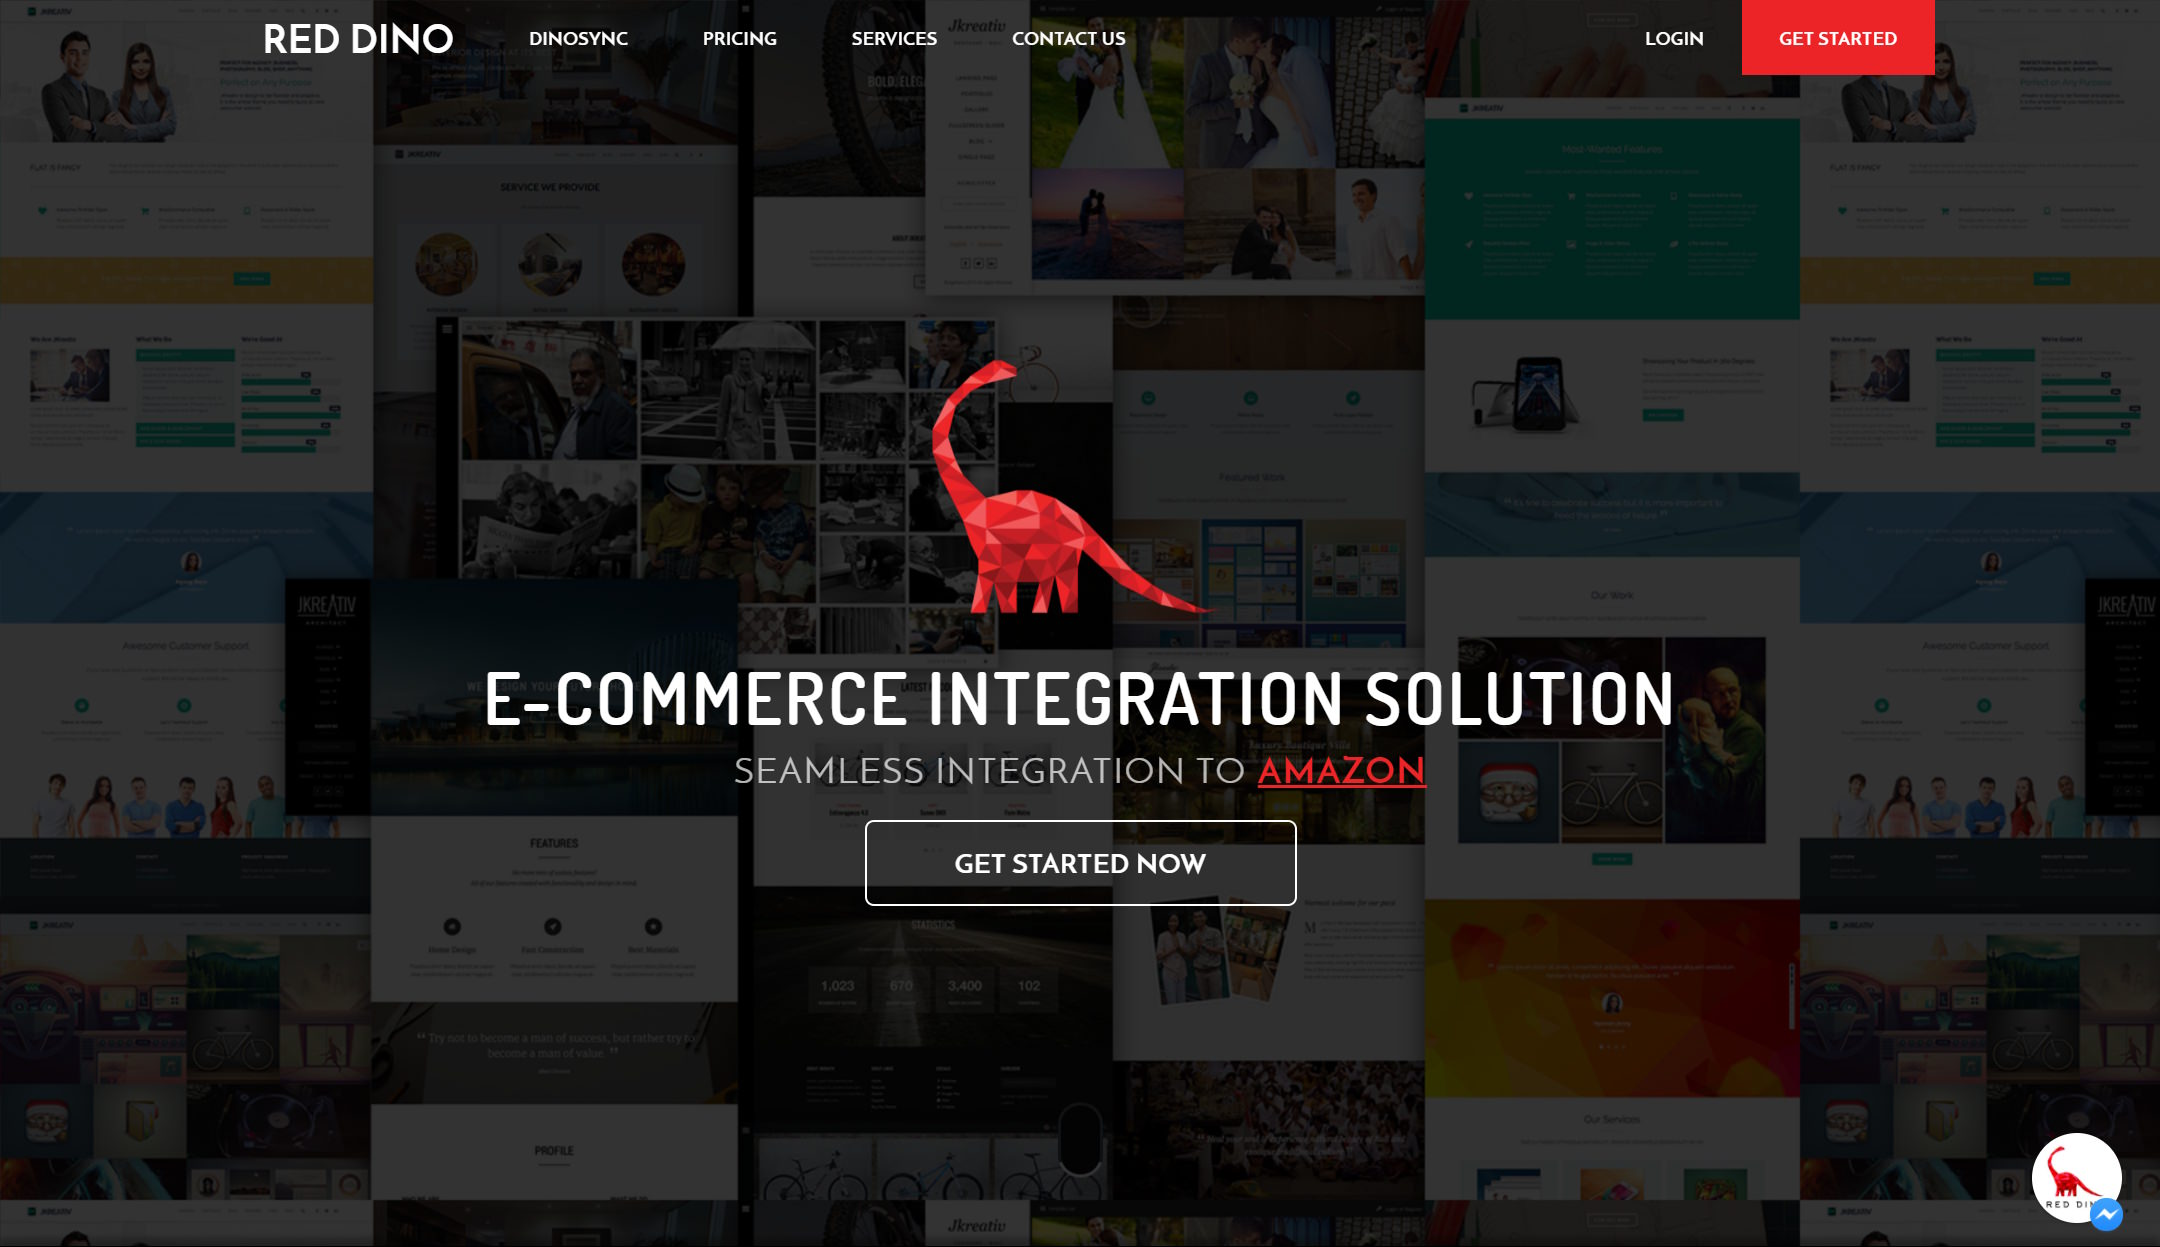 Red Dino Venture | E-Commerce Integration Solution